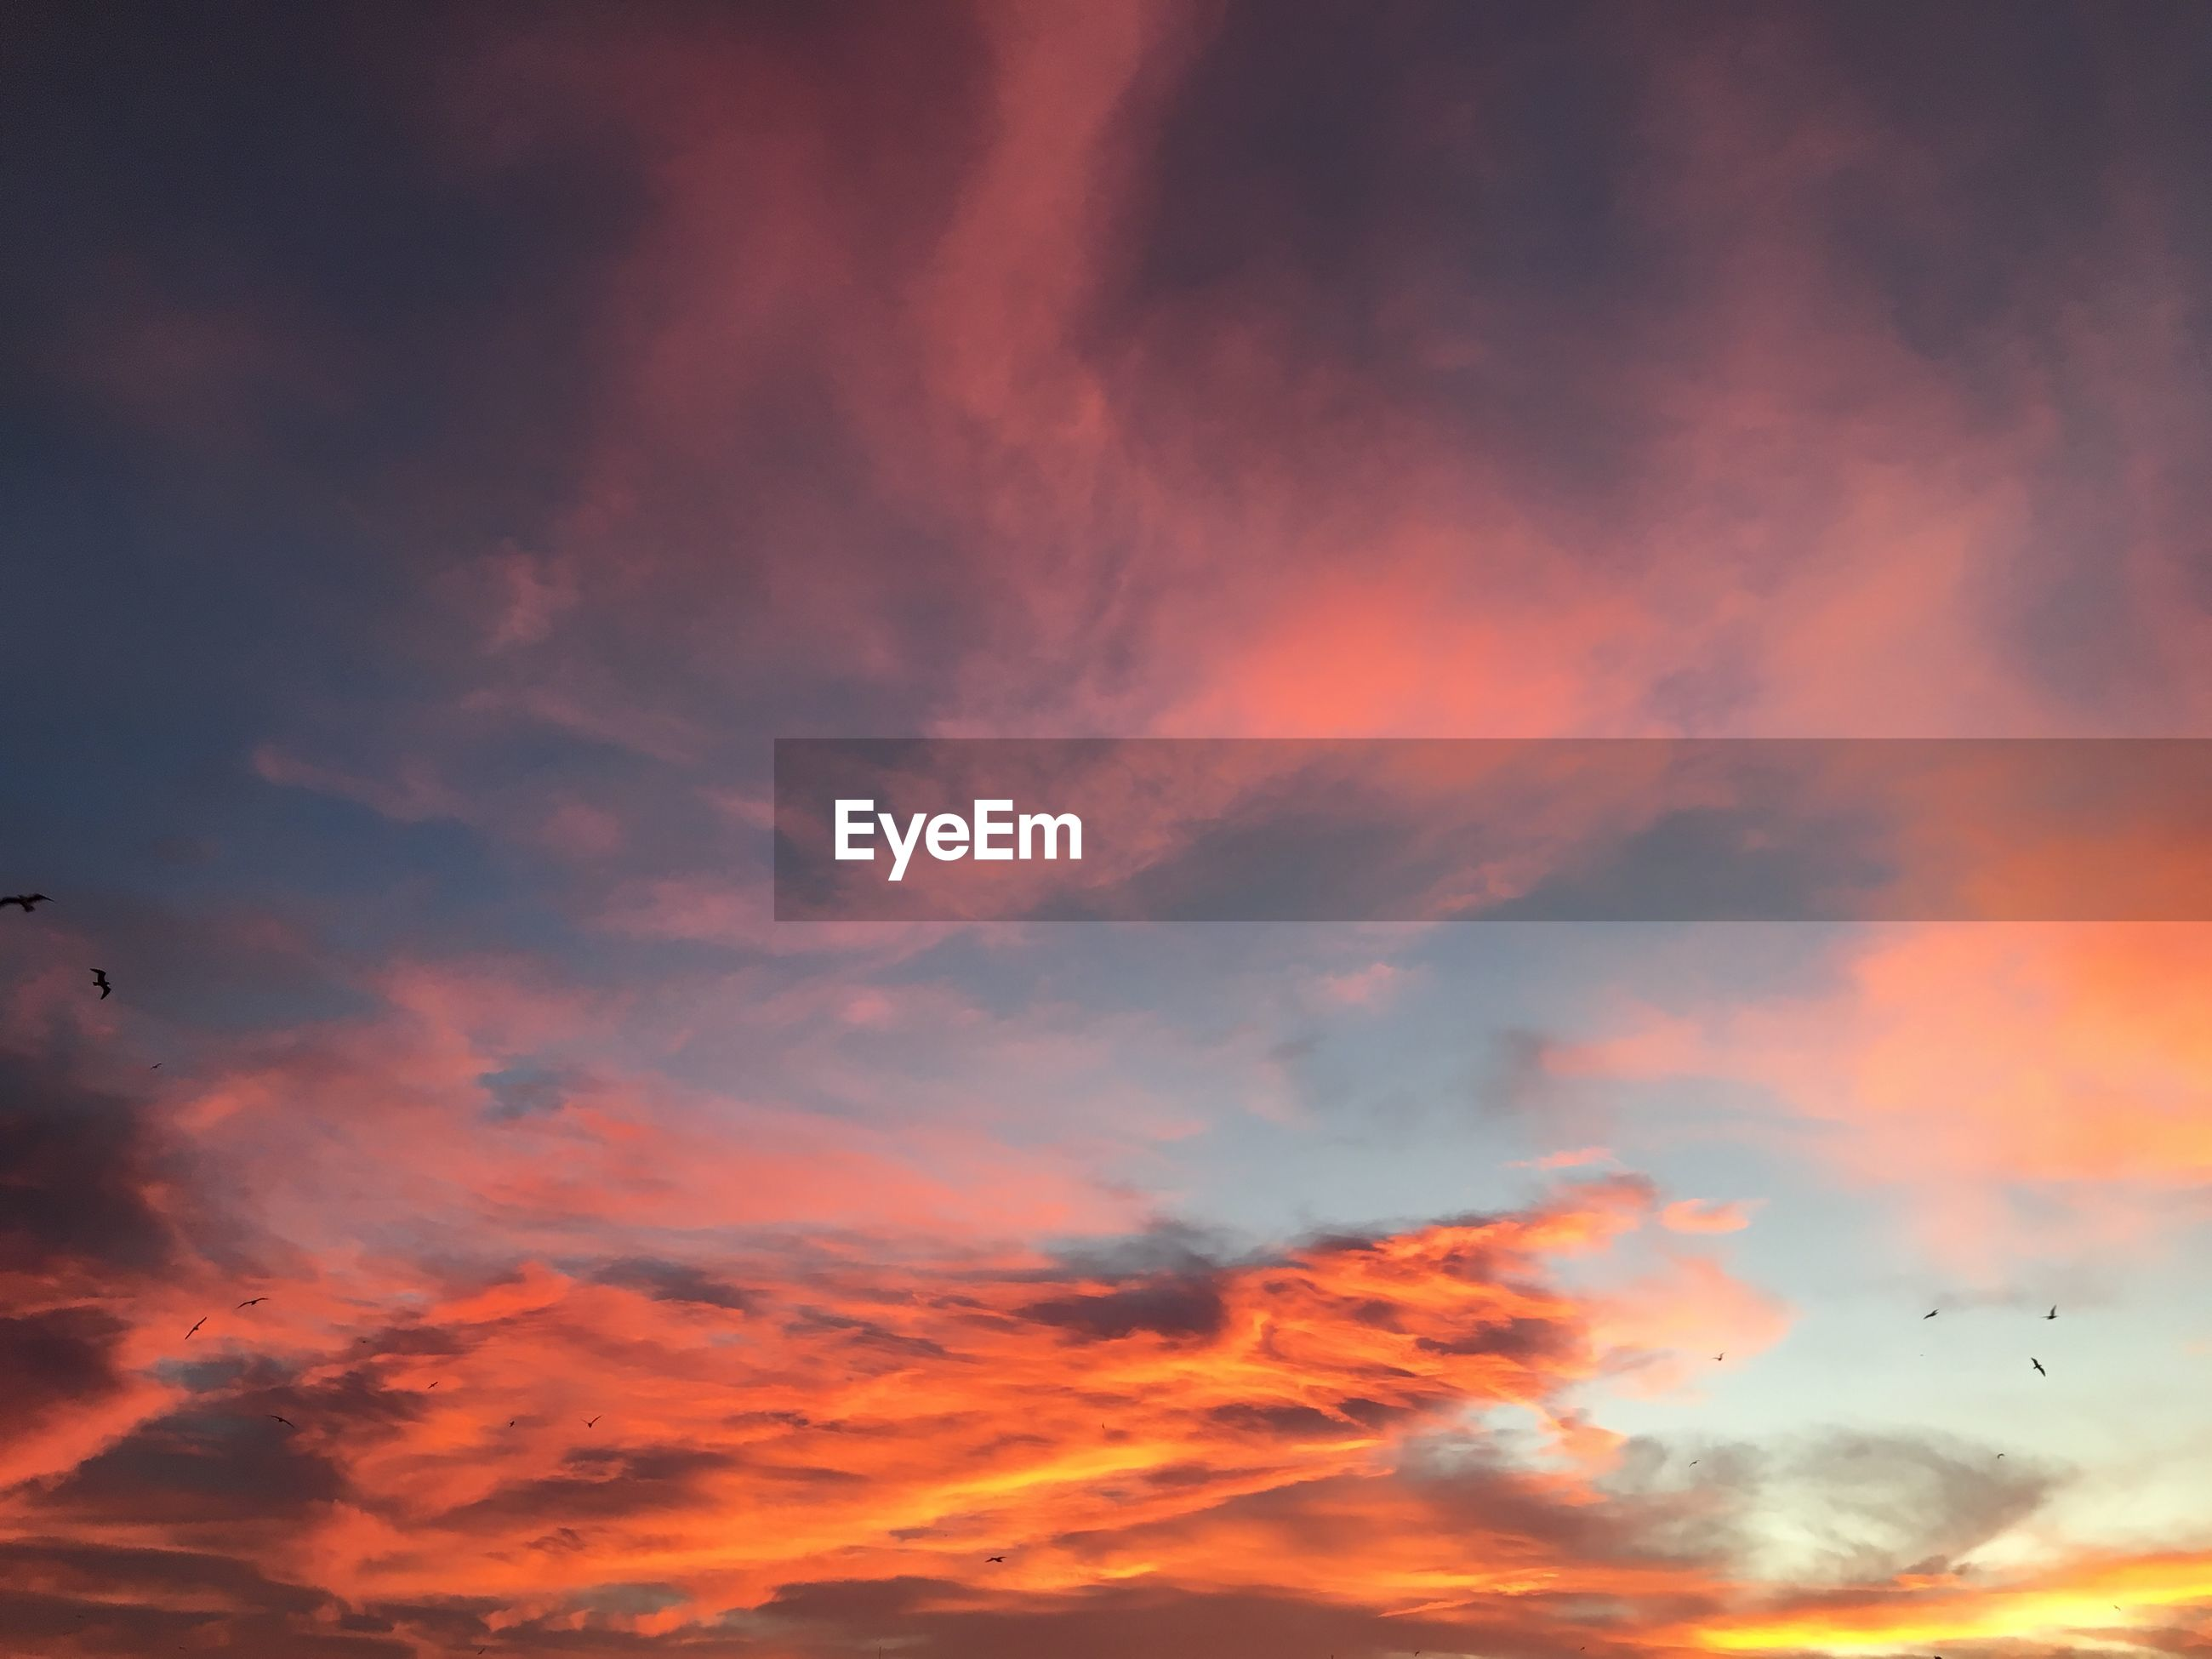 sunset, sky, low angle view, cloud - sky, orange color, beauty in nature, cloudy, scenics, tranquility, nature, tranquil scene, cloud, bird, silhouette, dramatic sky, idyllic, flying, sky only, animal themes, majestic